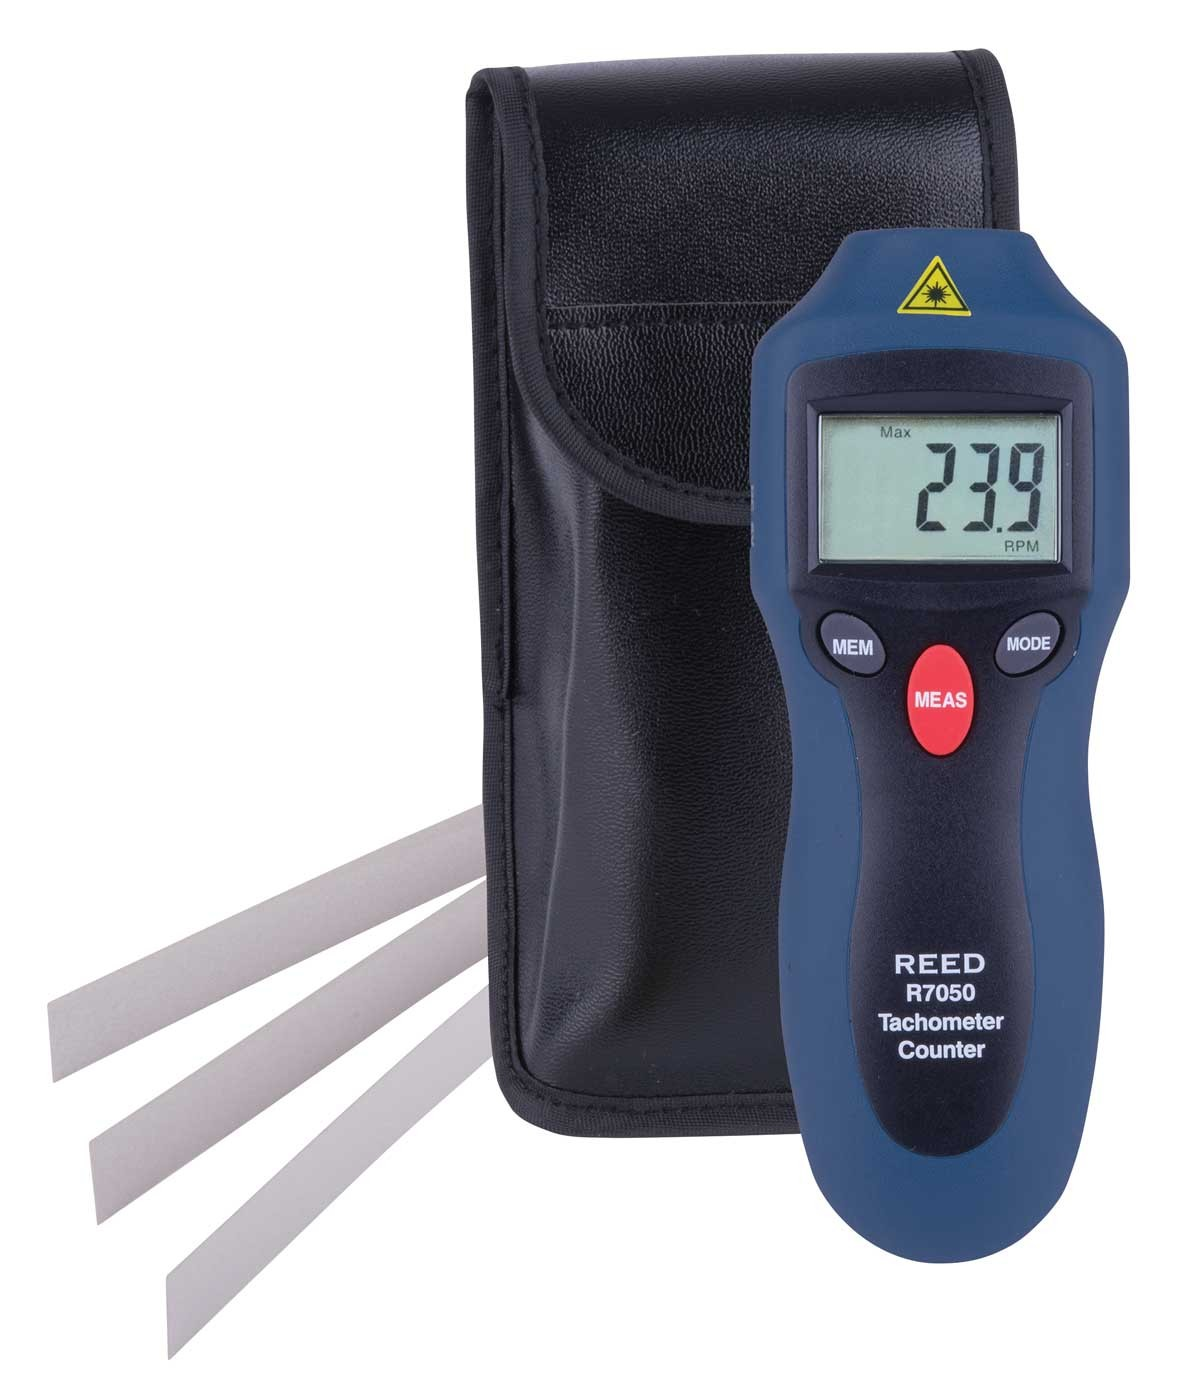 REED R7050 Compact Photo Tachometer and Counter-Included